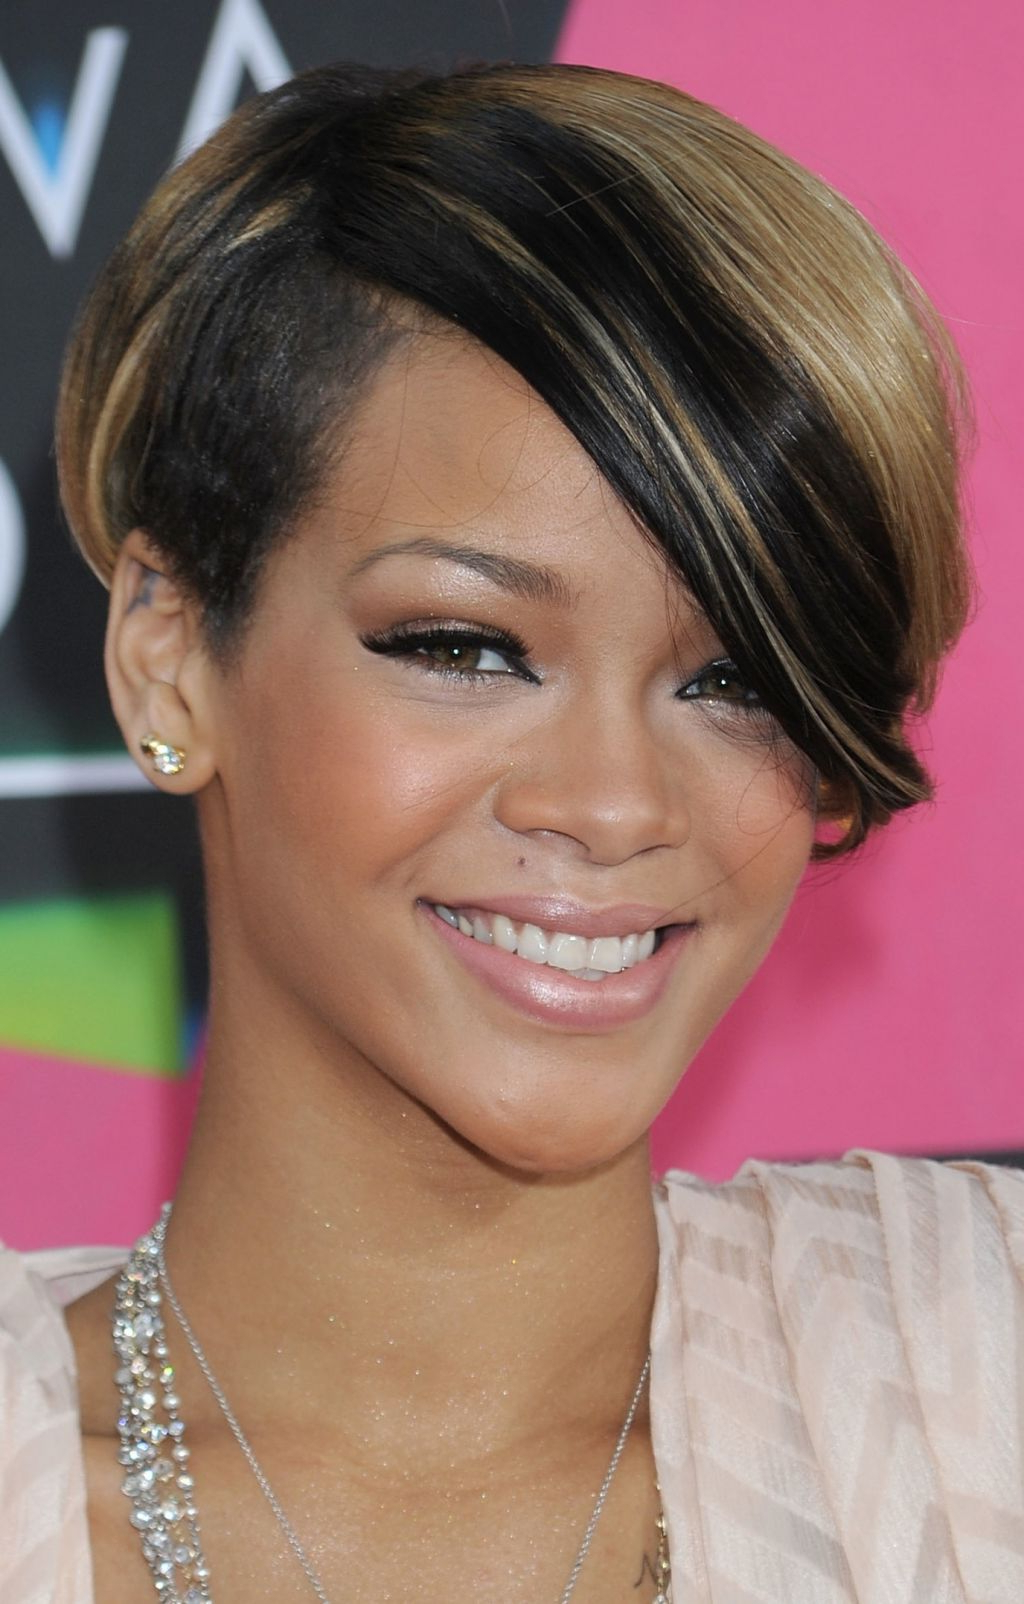 ? 24+ Inspirational Black Females Short Hairstyles: Short Regarding Short Short Haircuts For Black Women (View 20 of 25)